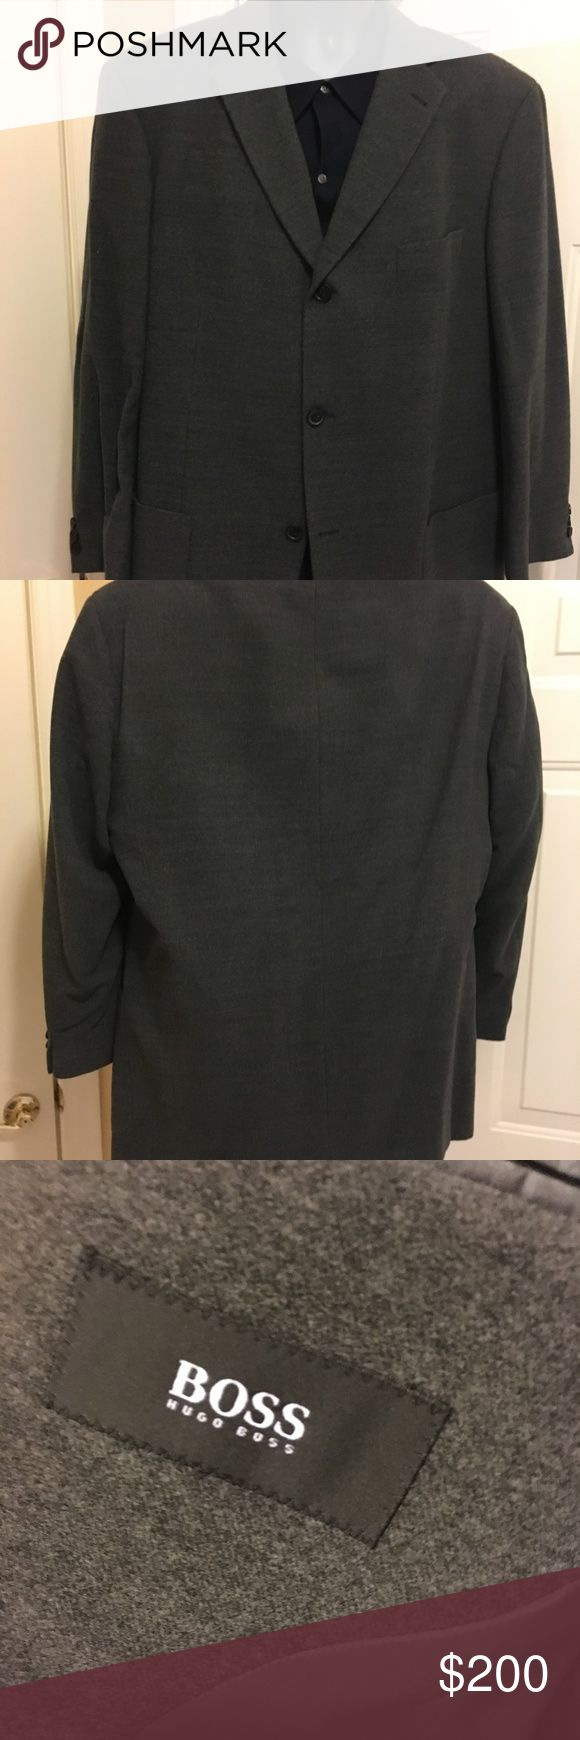 HUGO BOSS WOOL GREY SPORT COAT (EUC) Excellent Used Condition - Hugo Boss 100% Virgin Soft Wool,  3-button Sport Coat.  Regular Fit with lining for your day and leisure wear.  Two front patch pockets and interior pockets Hugo Boss Jackets & Coats